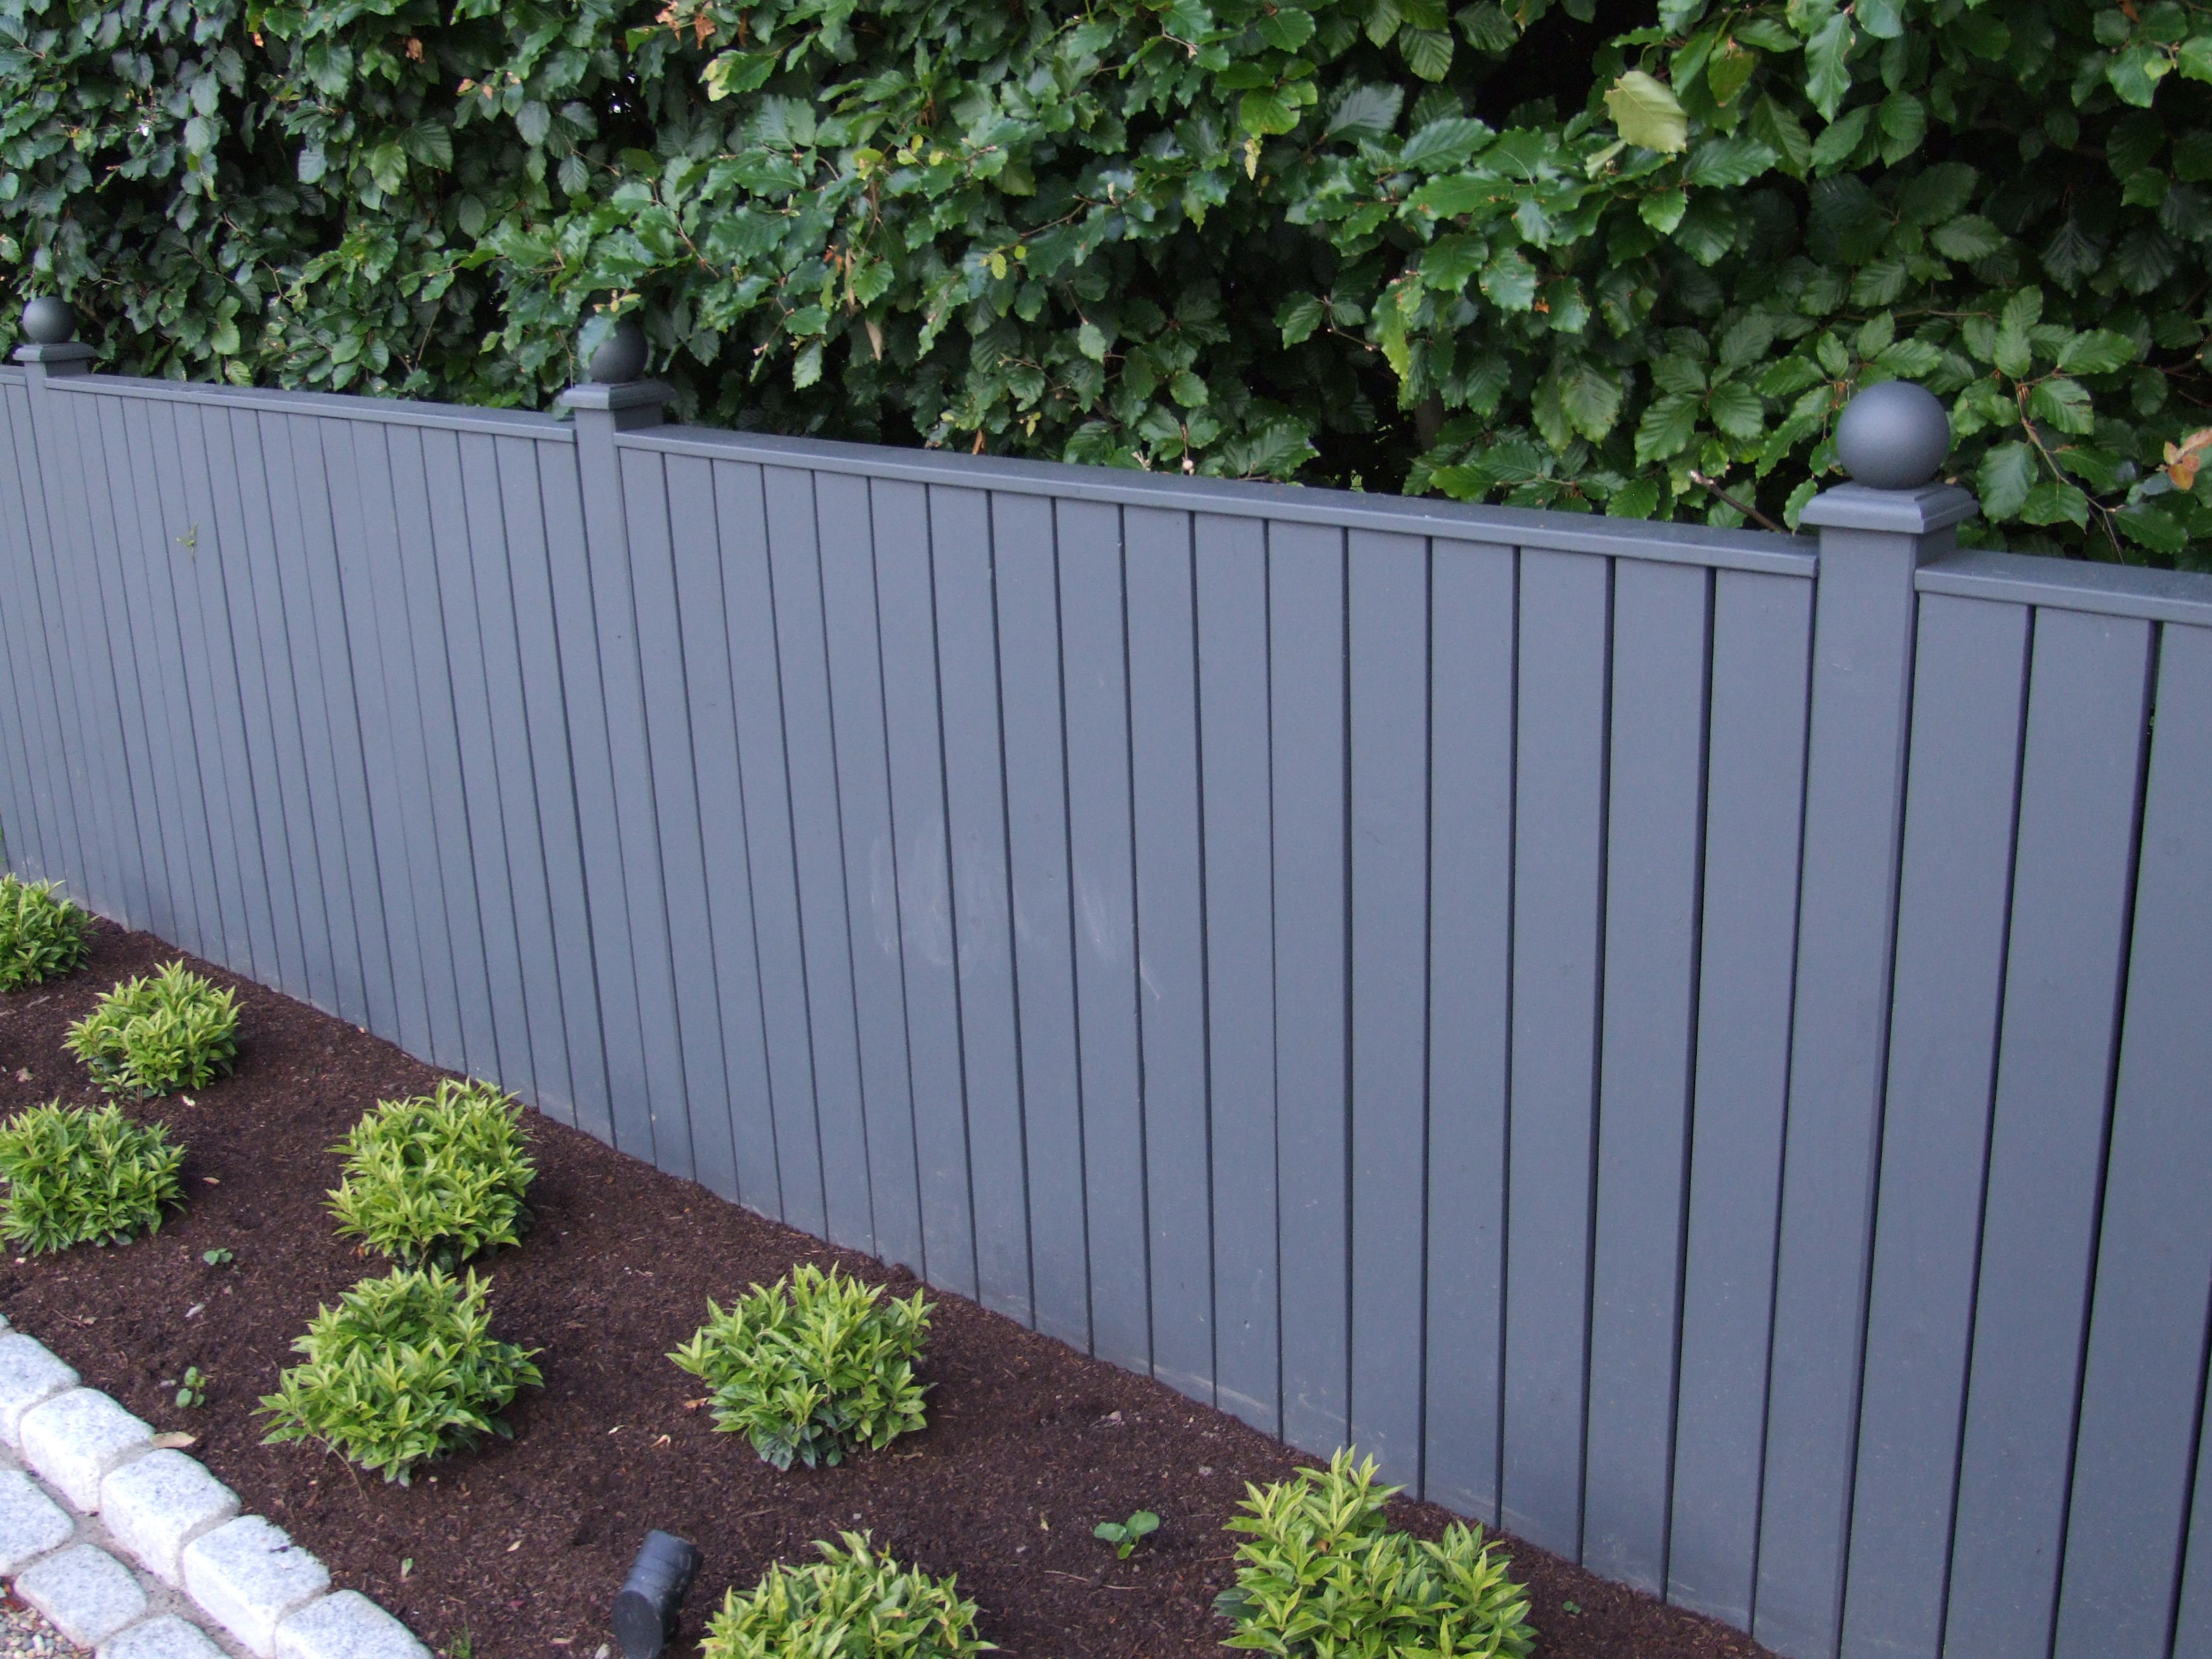 Fix garden fencing to create a smart backdrop. Image: Serenitylandscapes.com